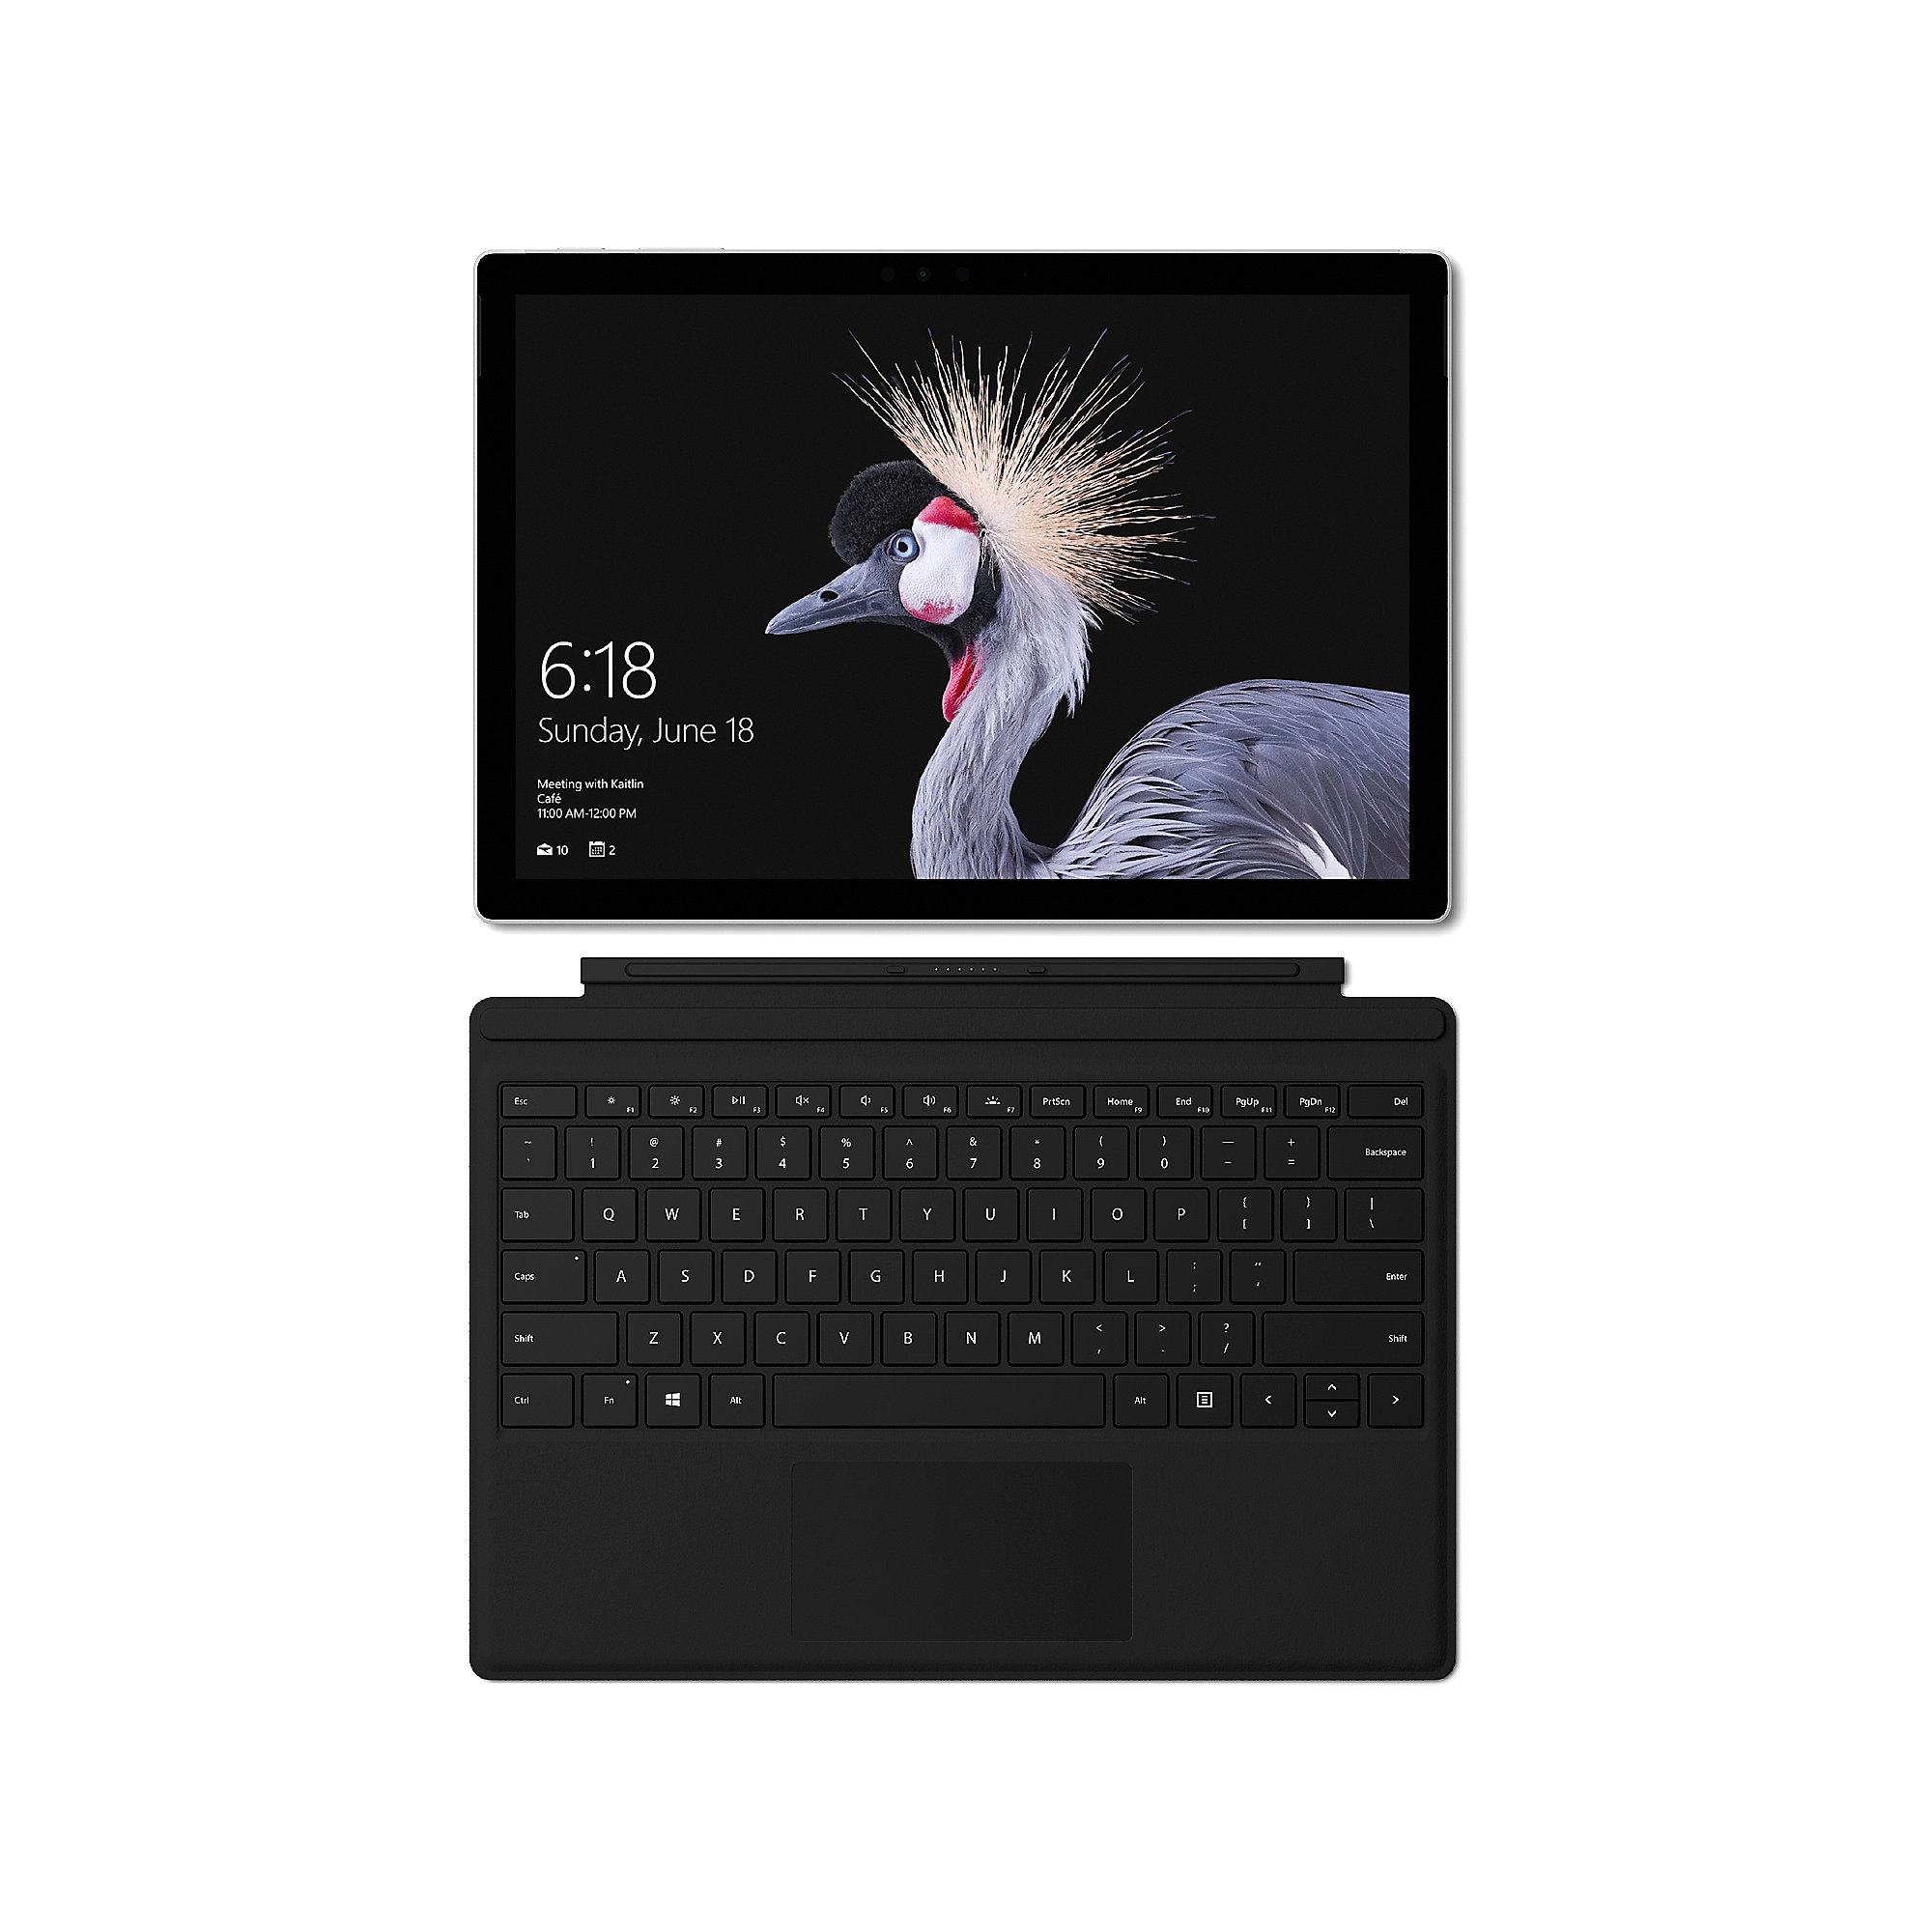 surface pro fjr 00003 2in1 m3 7y30 pcie ssd qhd windows. Black Bedroom Furniture Sets. Home Design Ideas